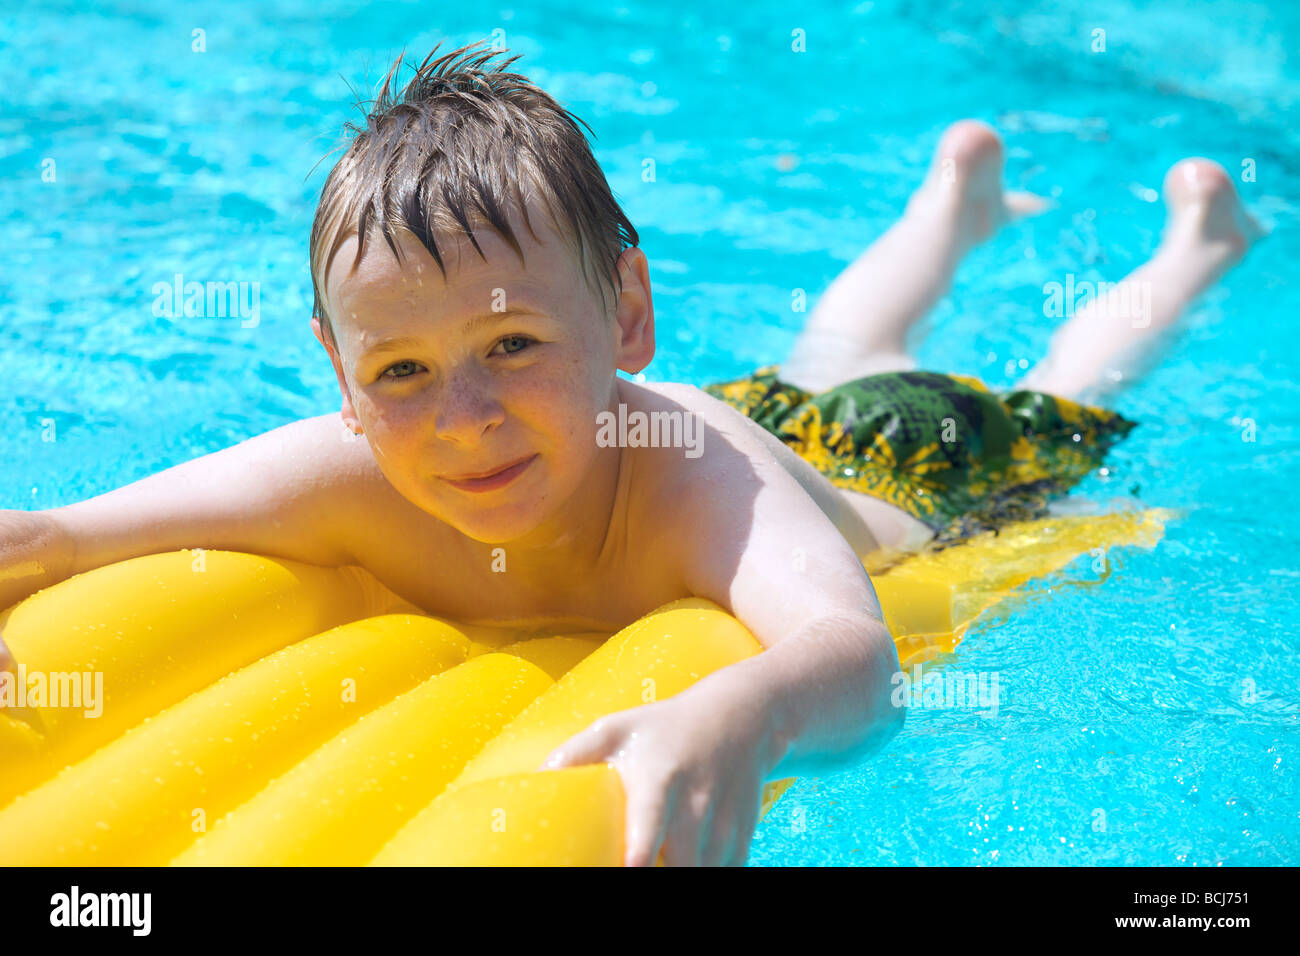 Happy Young Boy Relaxing At The Swimming Pool On A Yellow